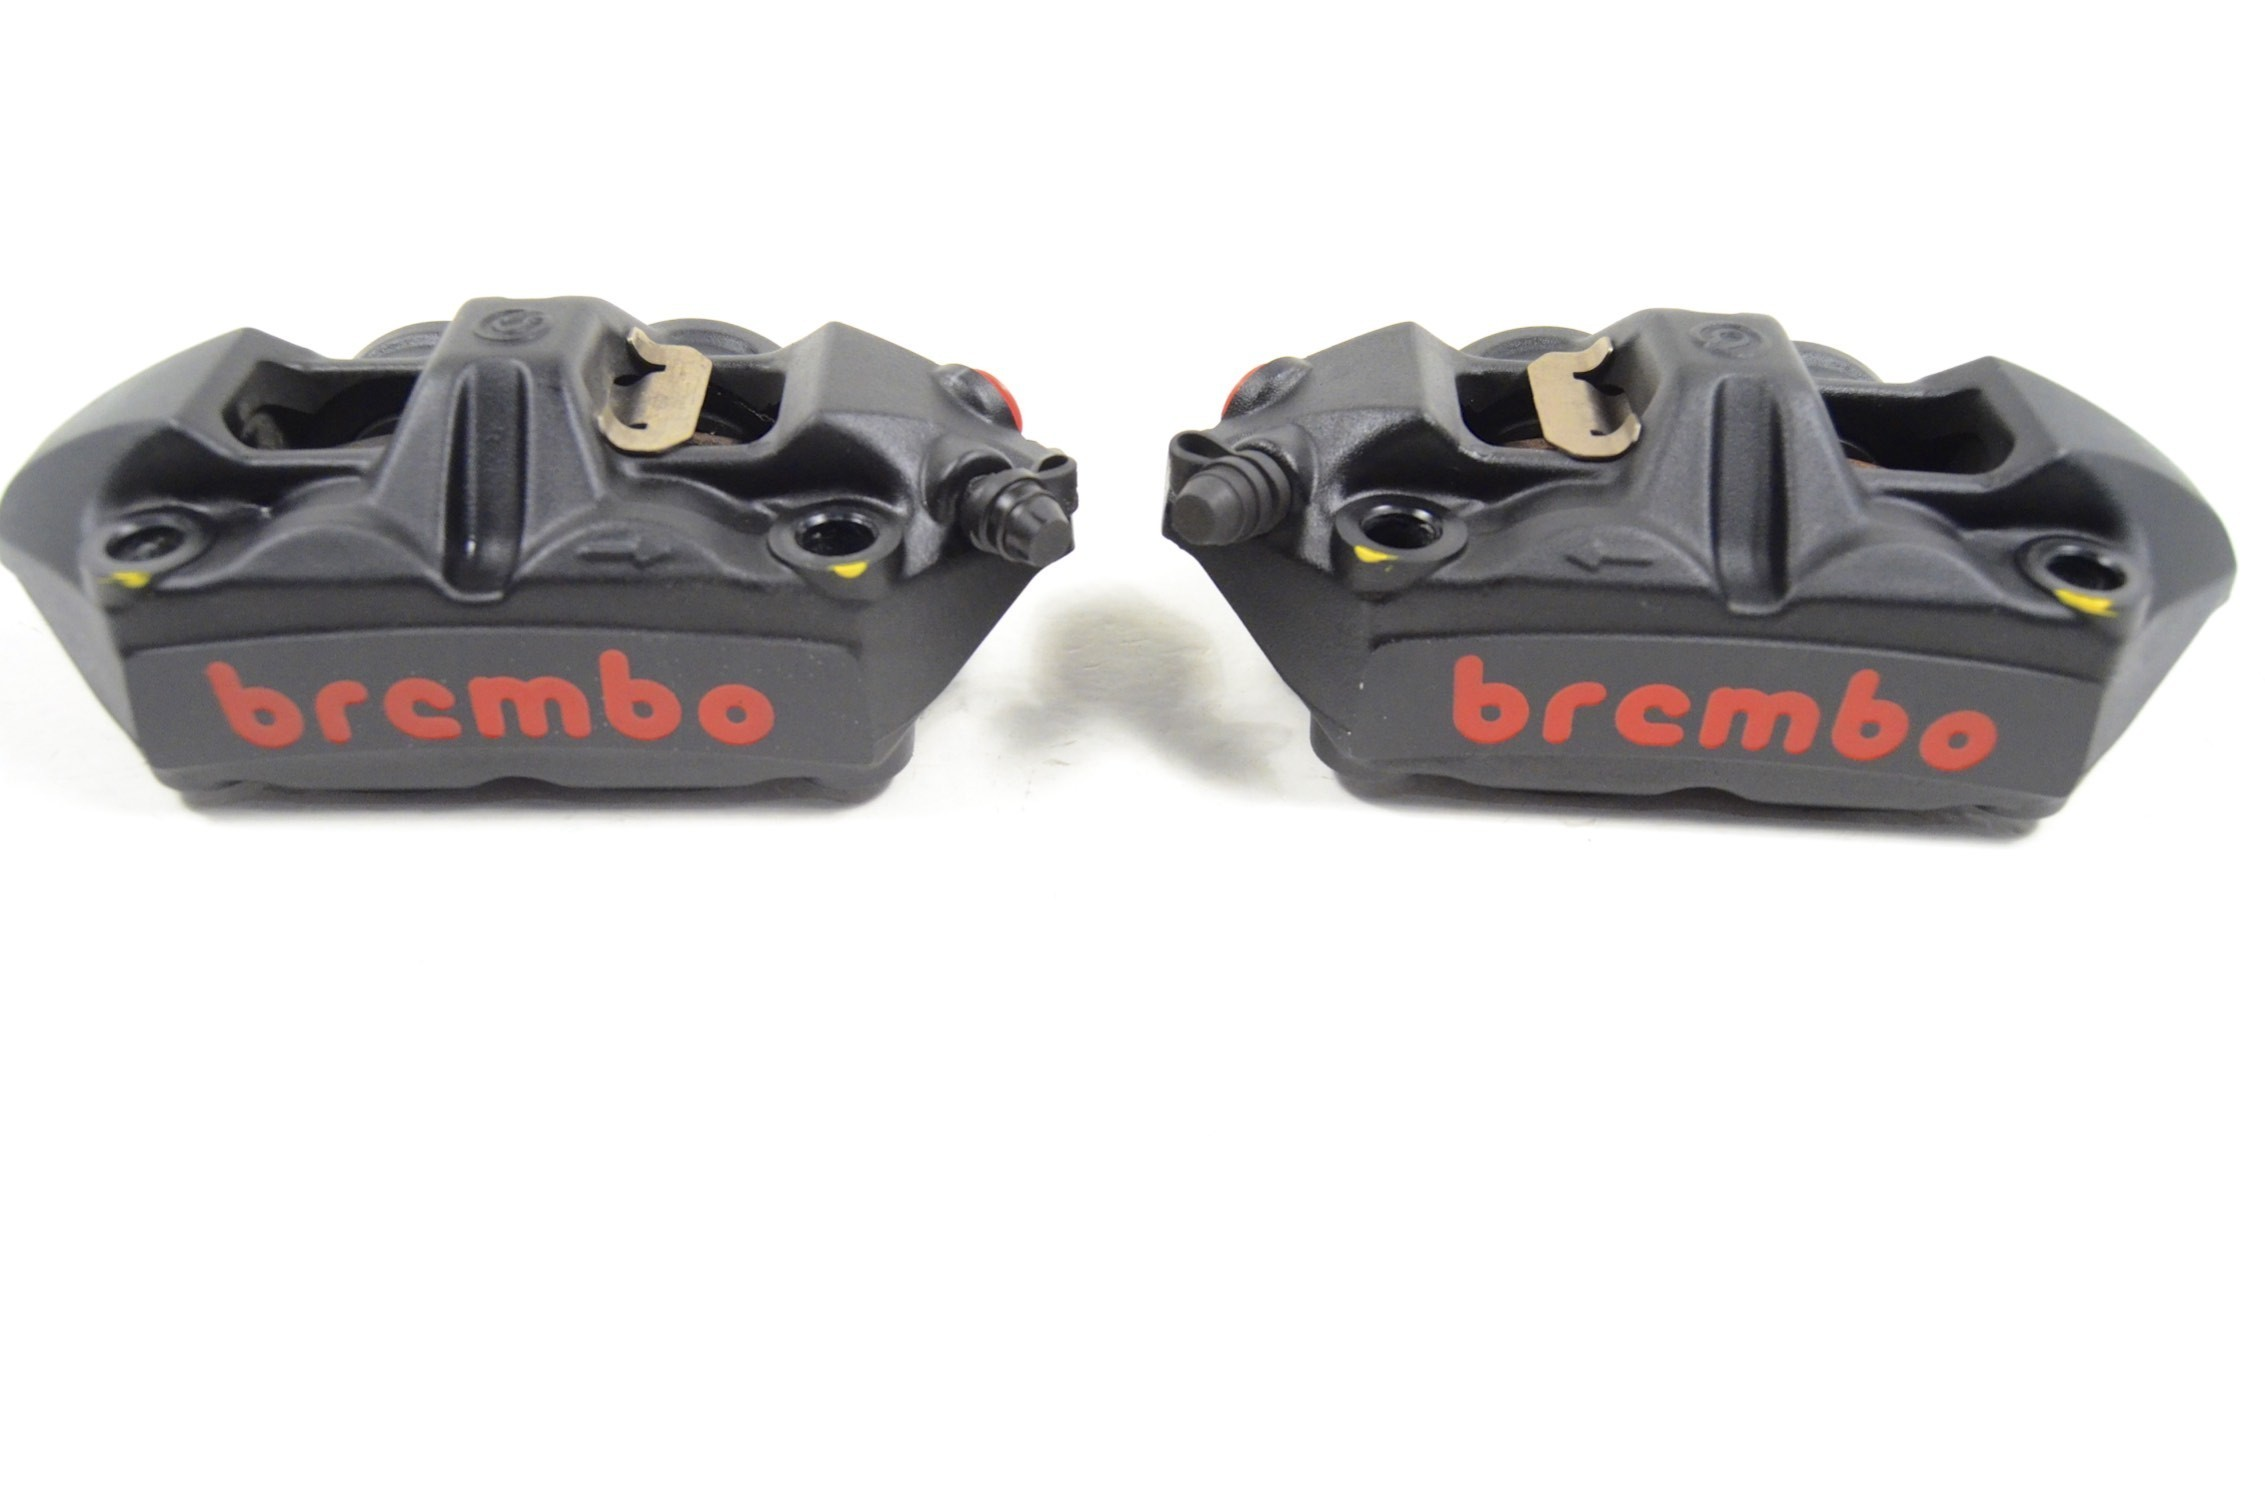 Brembo 100mm Forged Monobloc M4 Calipers (set of 2)